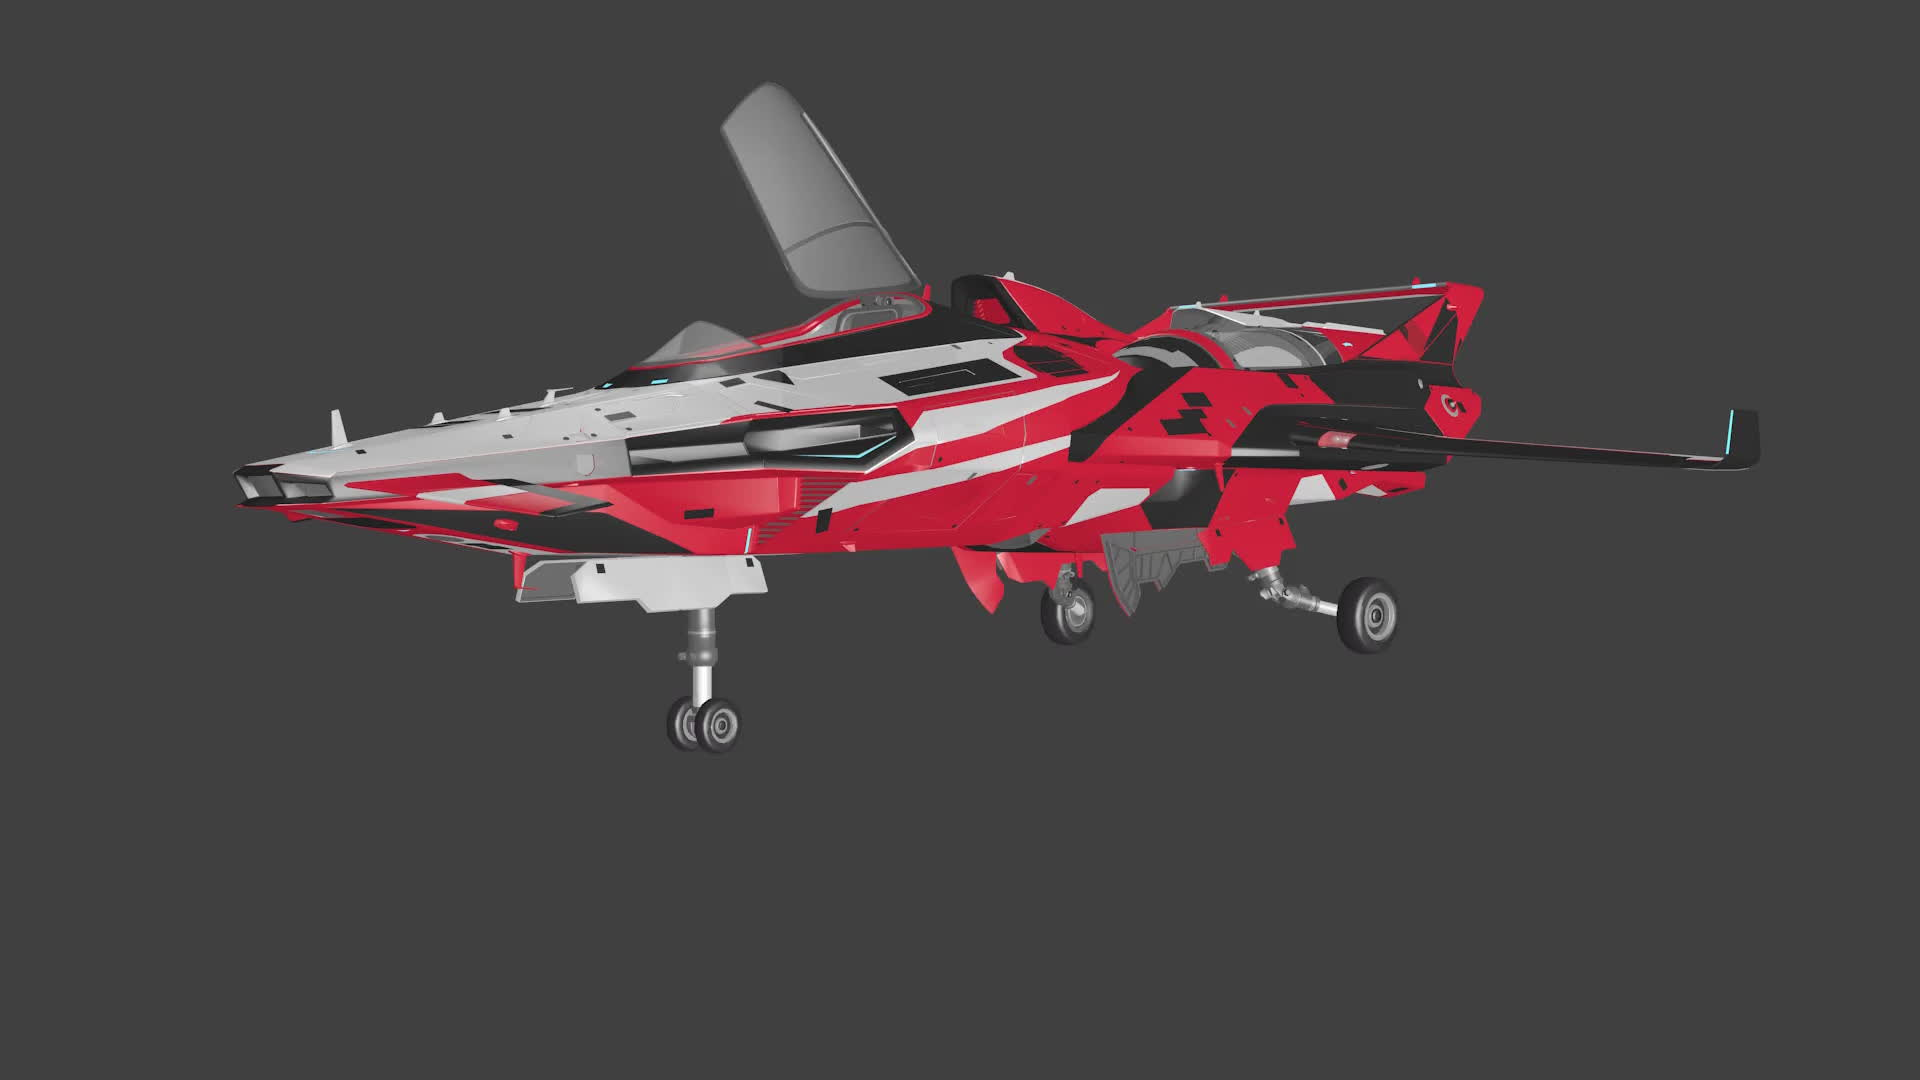 starcitizen, My Attempt at Animating an M50 Model (reddit) GIFs